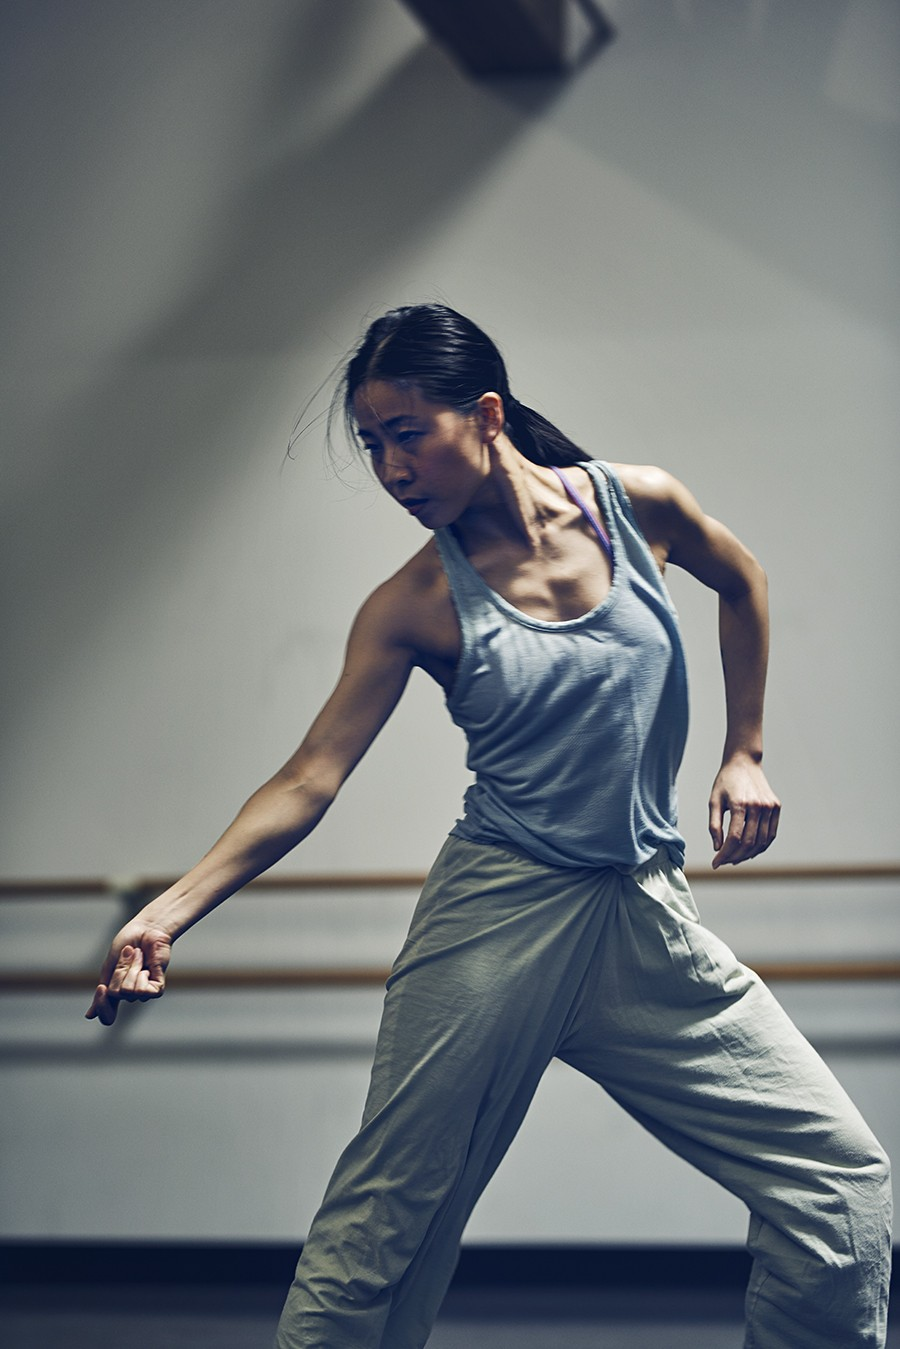 """Shiau says the highlight of her career so far was """"performing in my home country for the first time as a professional dancer"""" last month, where she presented her solo work in progress at a prestigious festival for new choreography. - MAX THOMSEN"""